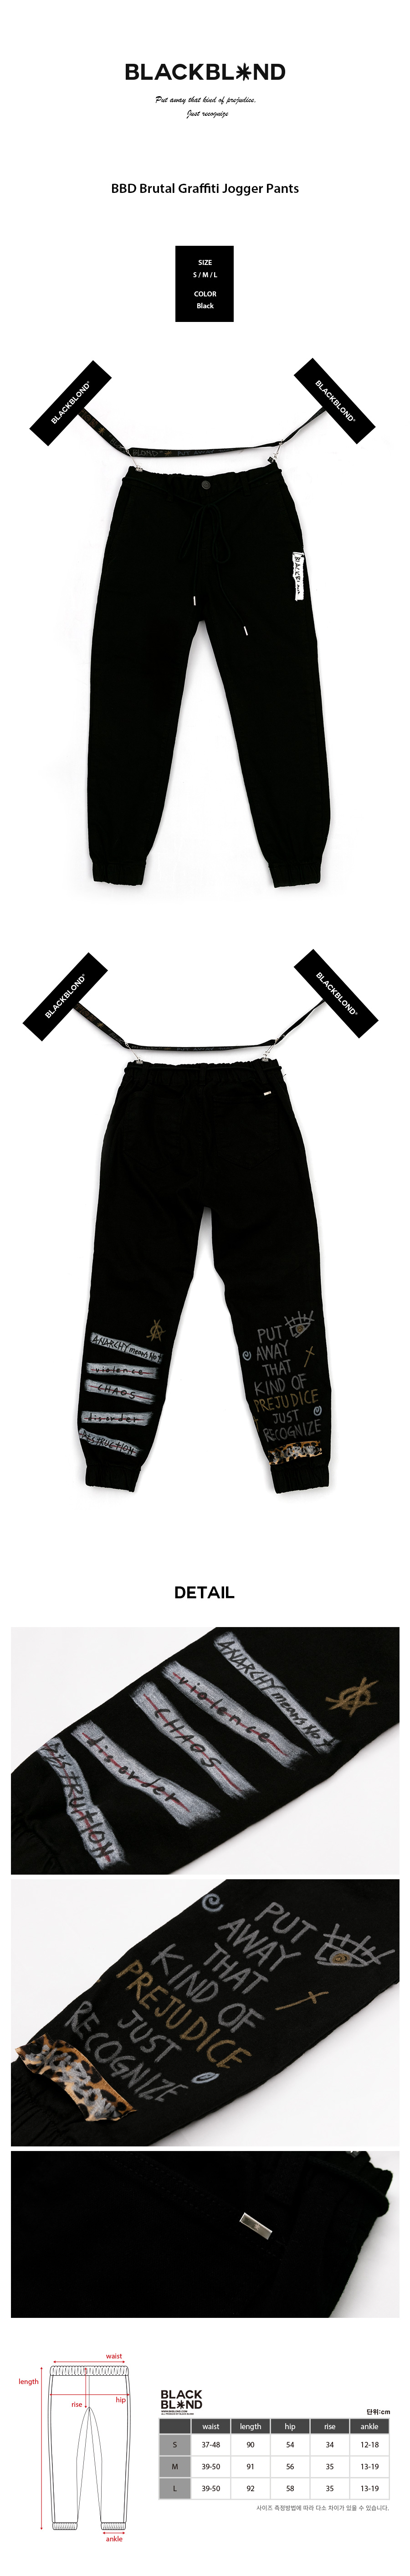 BBD-Brutal-Graffiti-Jogger-Pants-%28Black%29.jpg